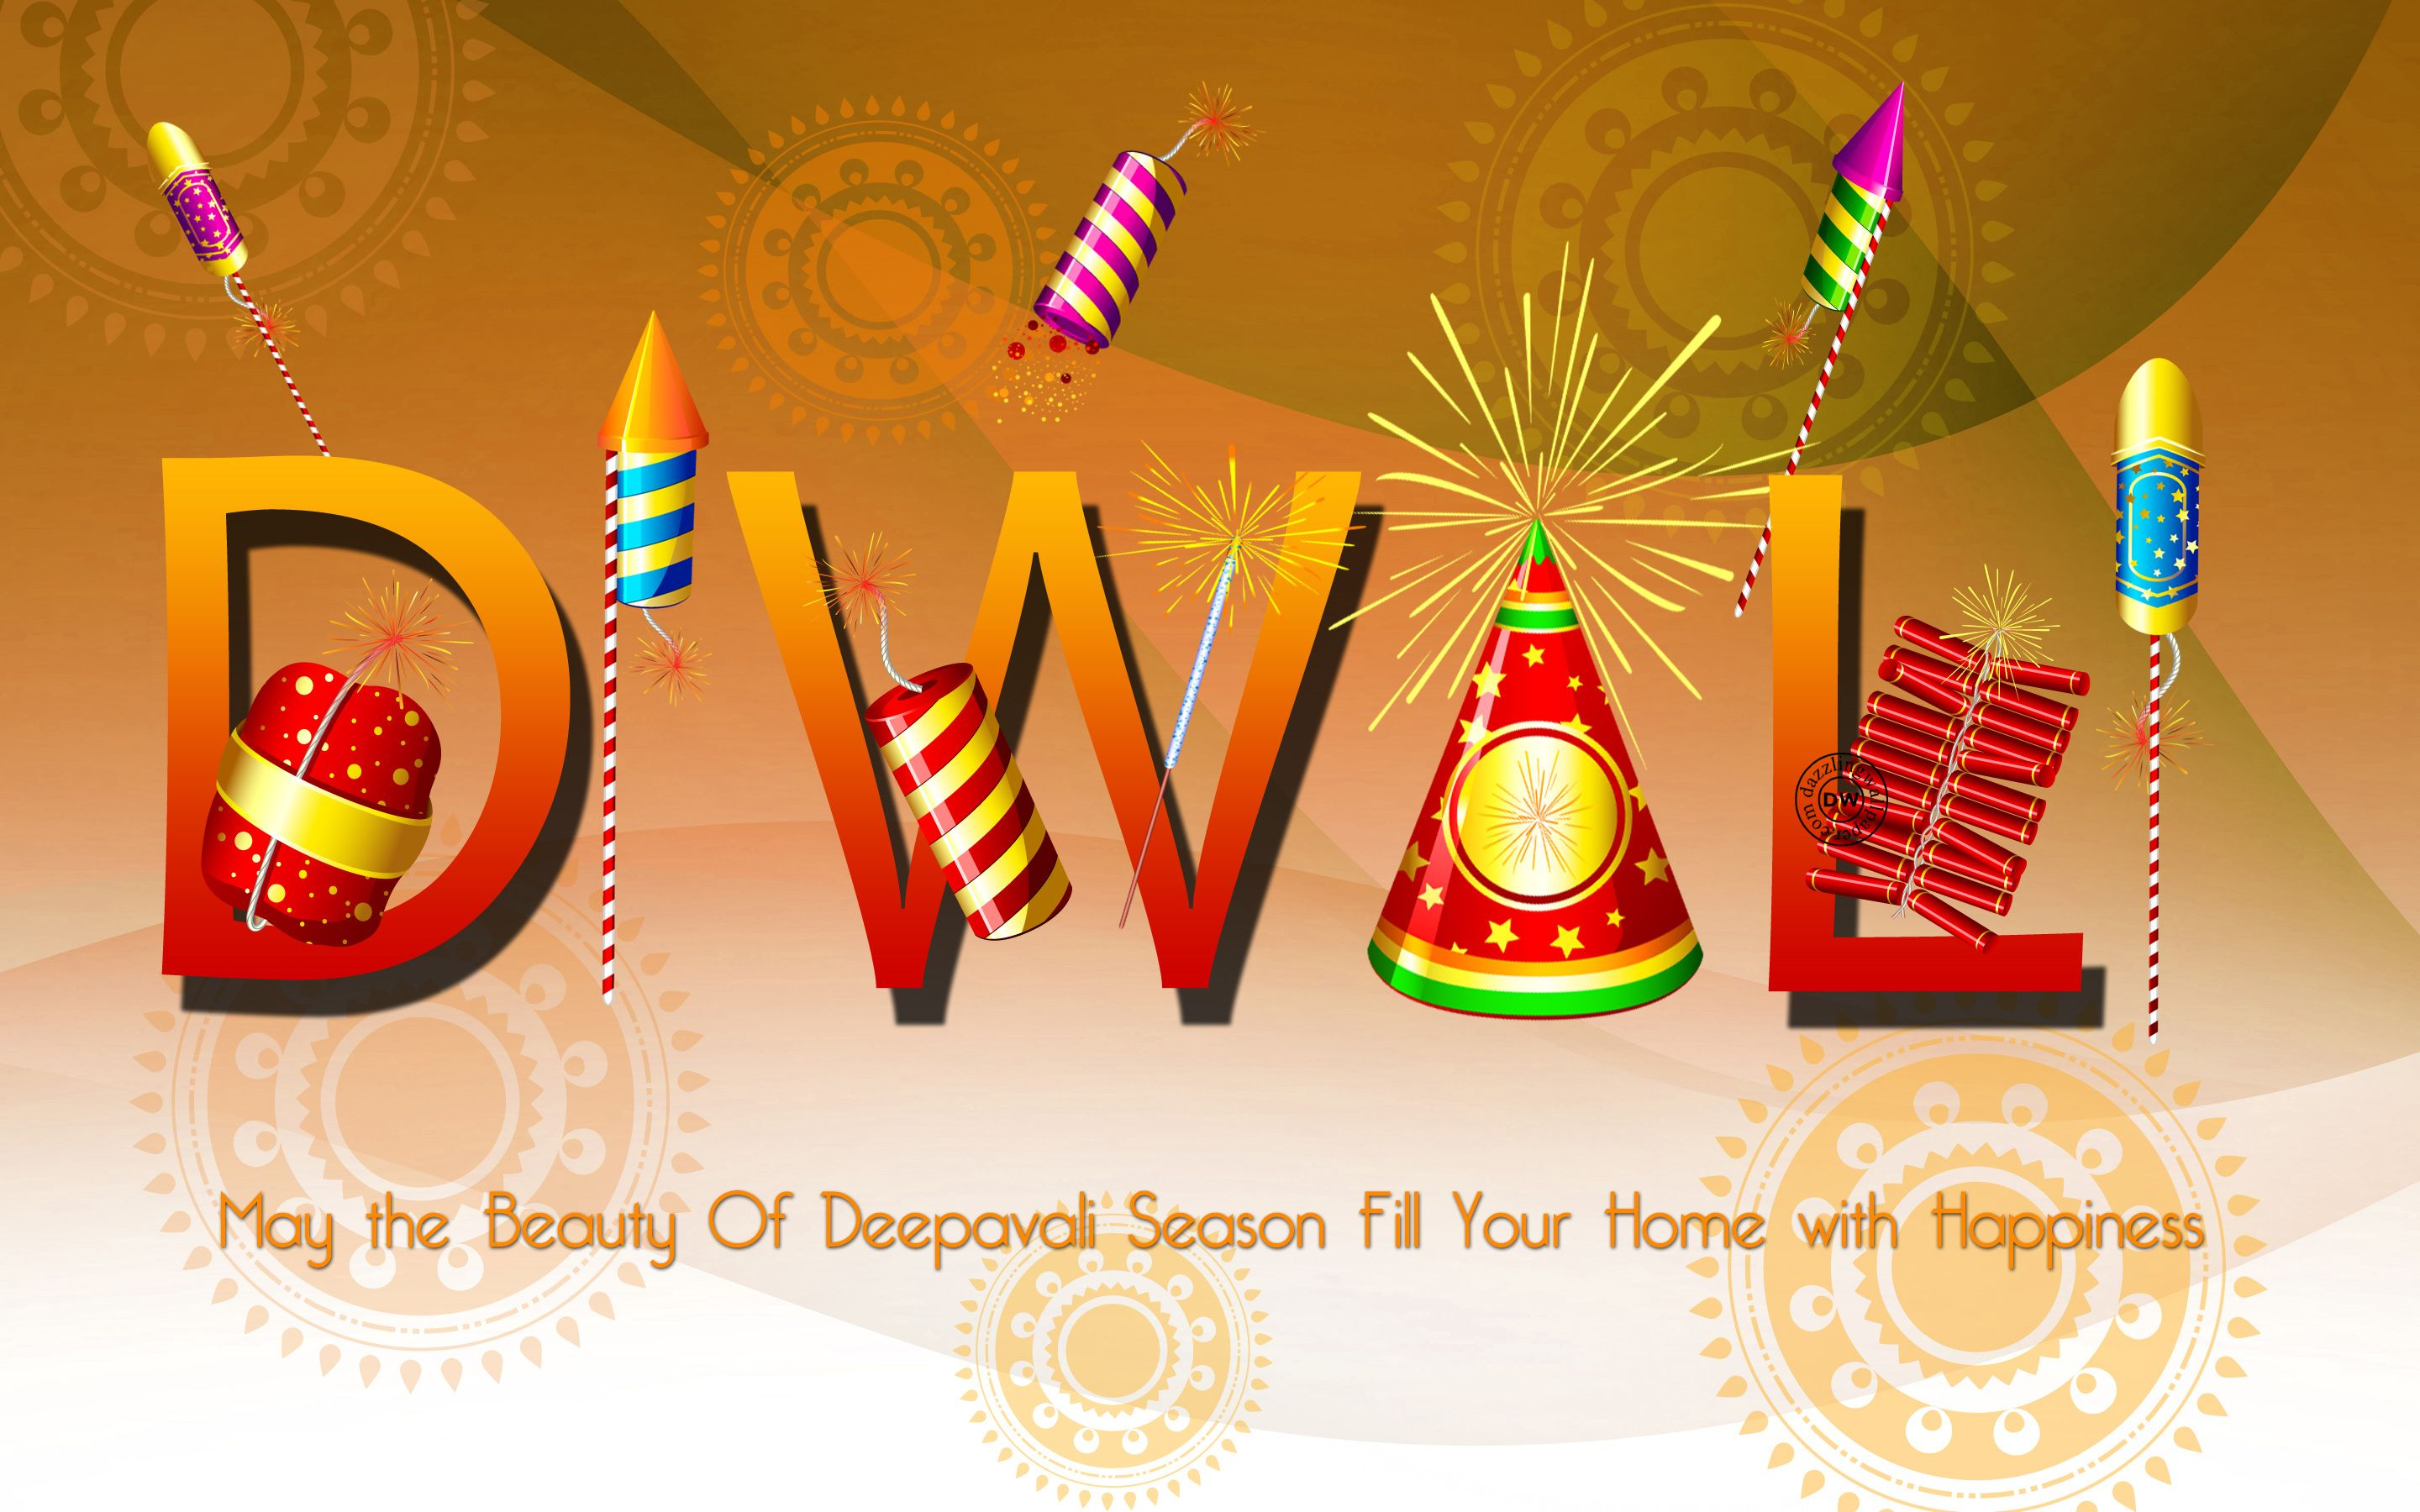 Wallpaper download diwali - Diwali Hd Wallpaper Free Download Happy Diwali 2014 Hd Wallpapers Diwali 2014 Greetings